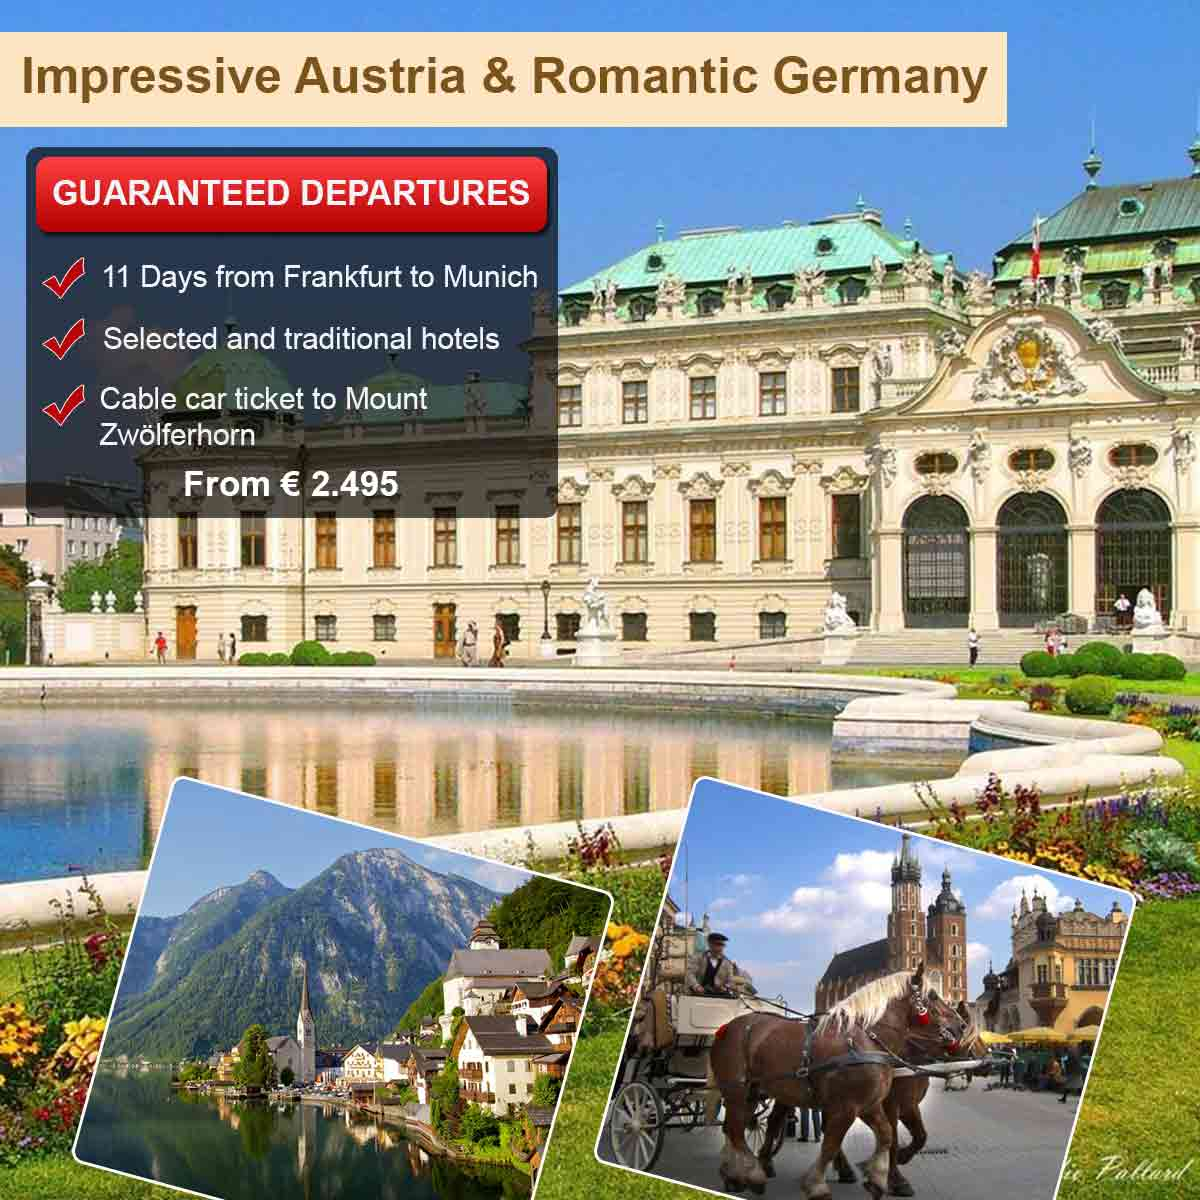 impressive-austria-romantic-germany1